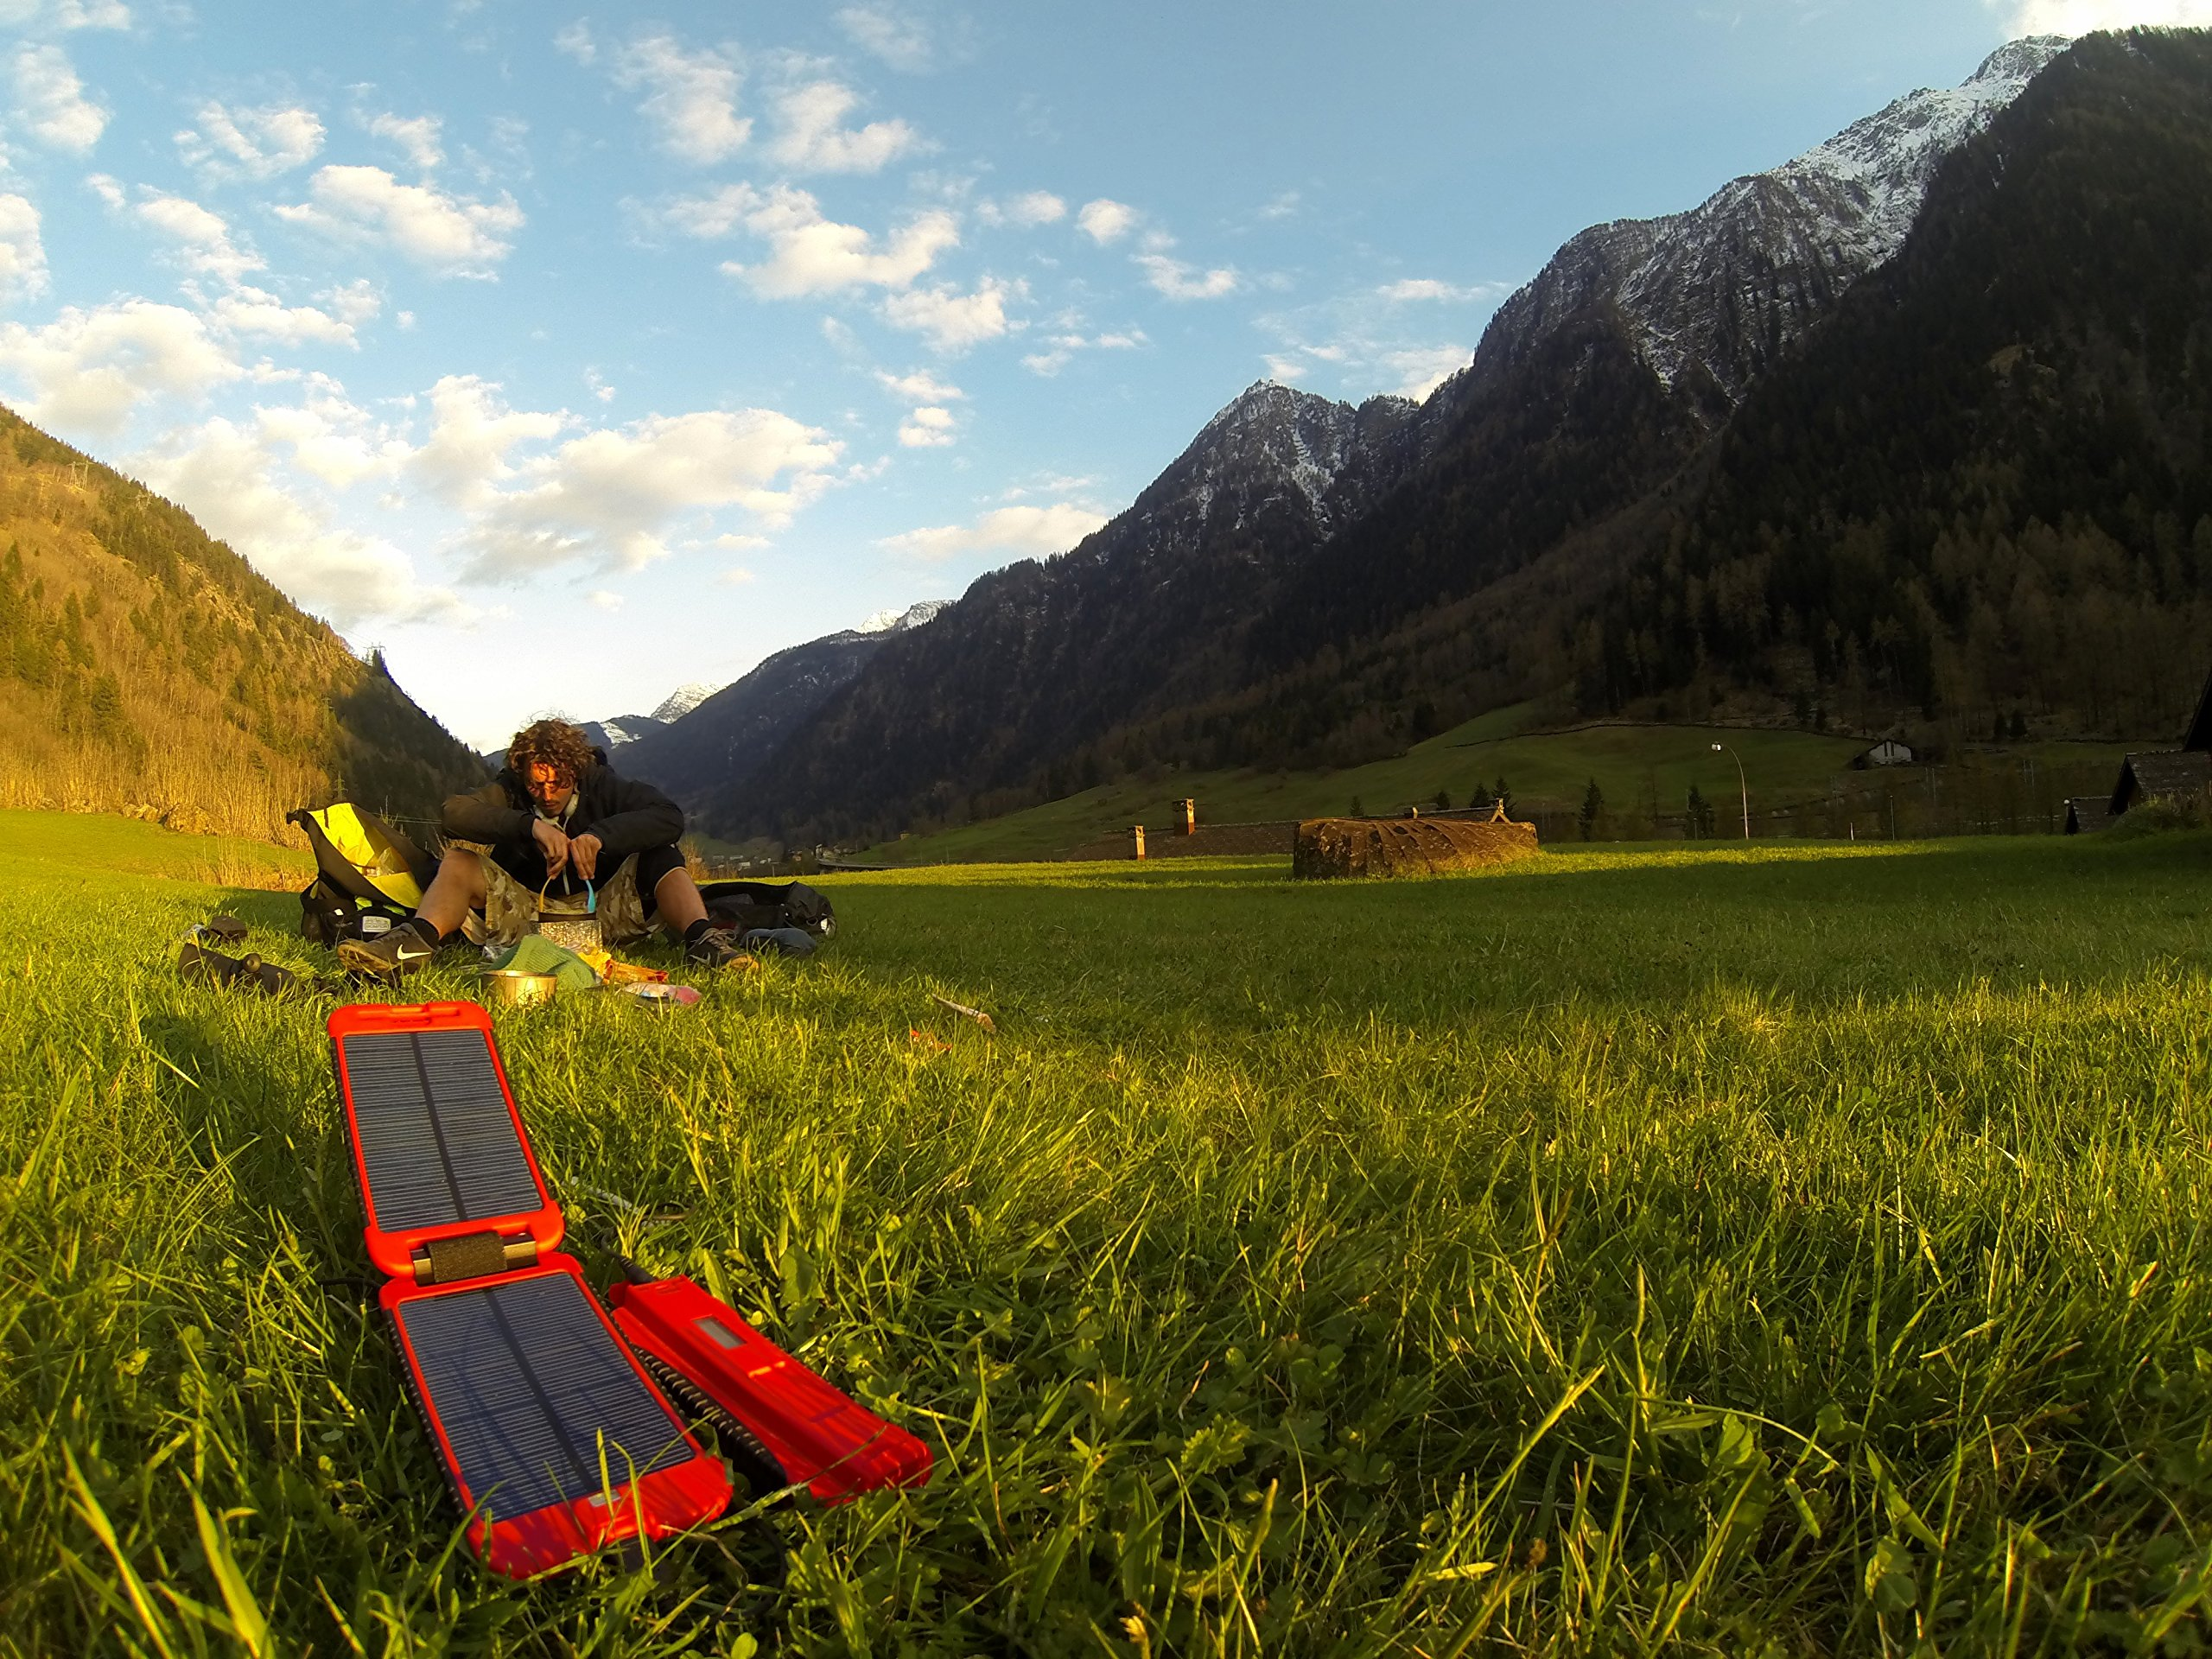 Exo-Science Powermonkey Extreme 5V and 12V Solar Portable Charger, Red by Exo-Science (Image #5)